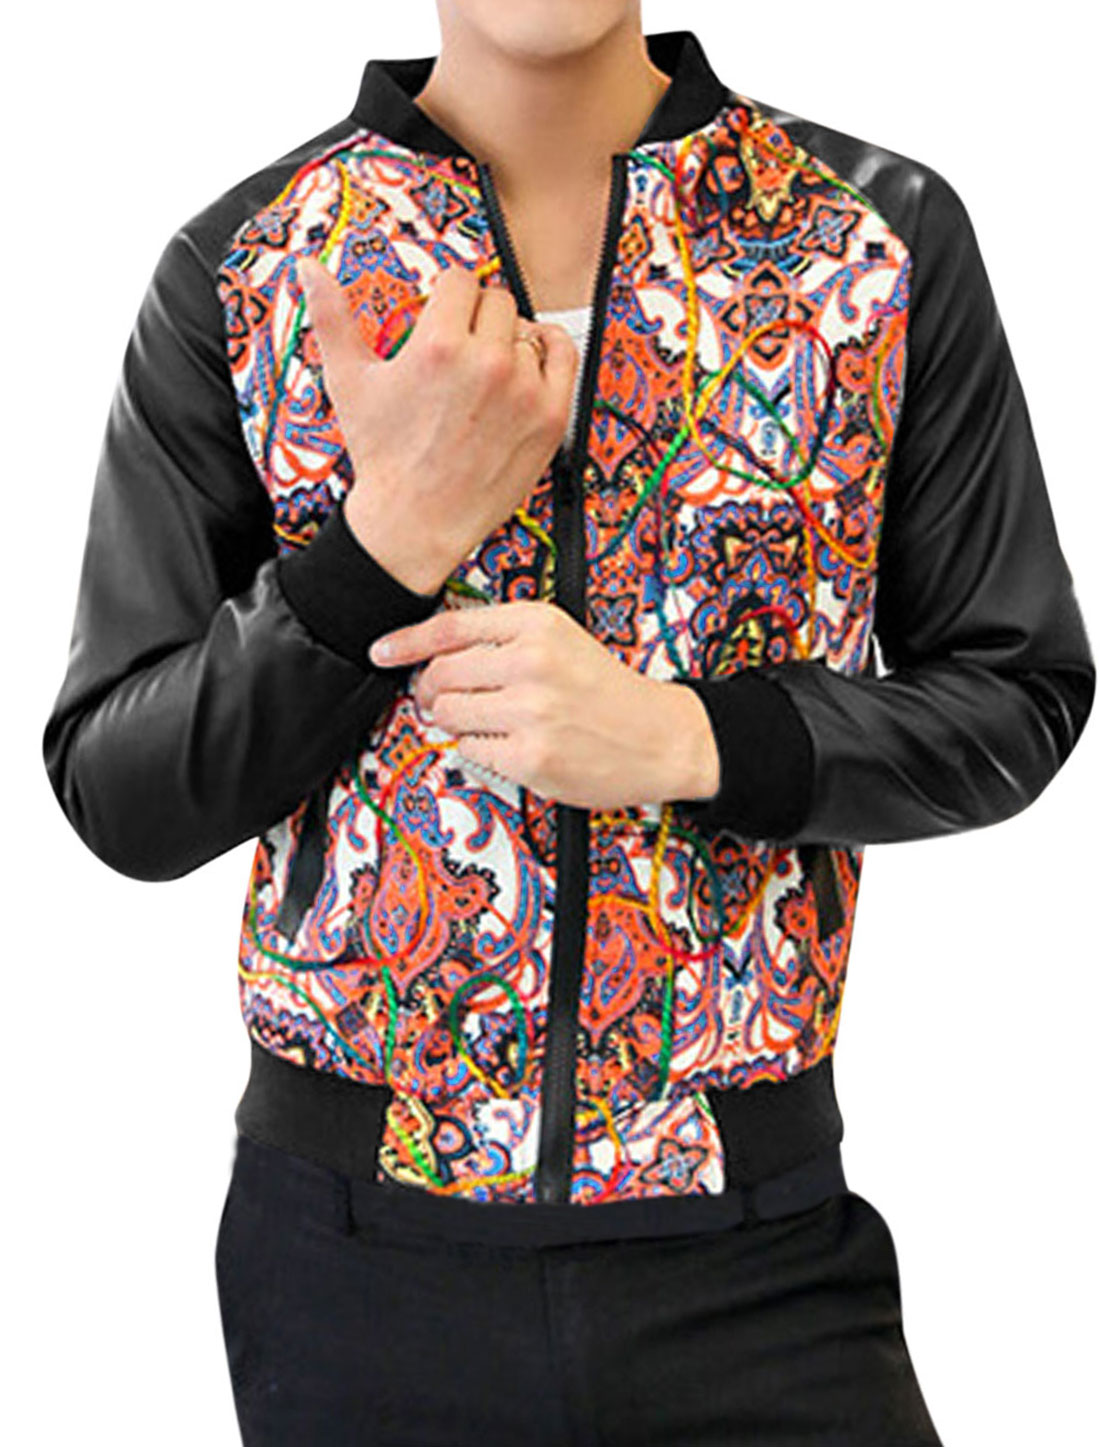 Men Imitation Leather Long Sleeves Contrast Floral Print Jacket Beige Orange M